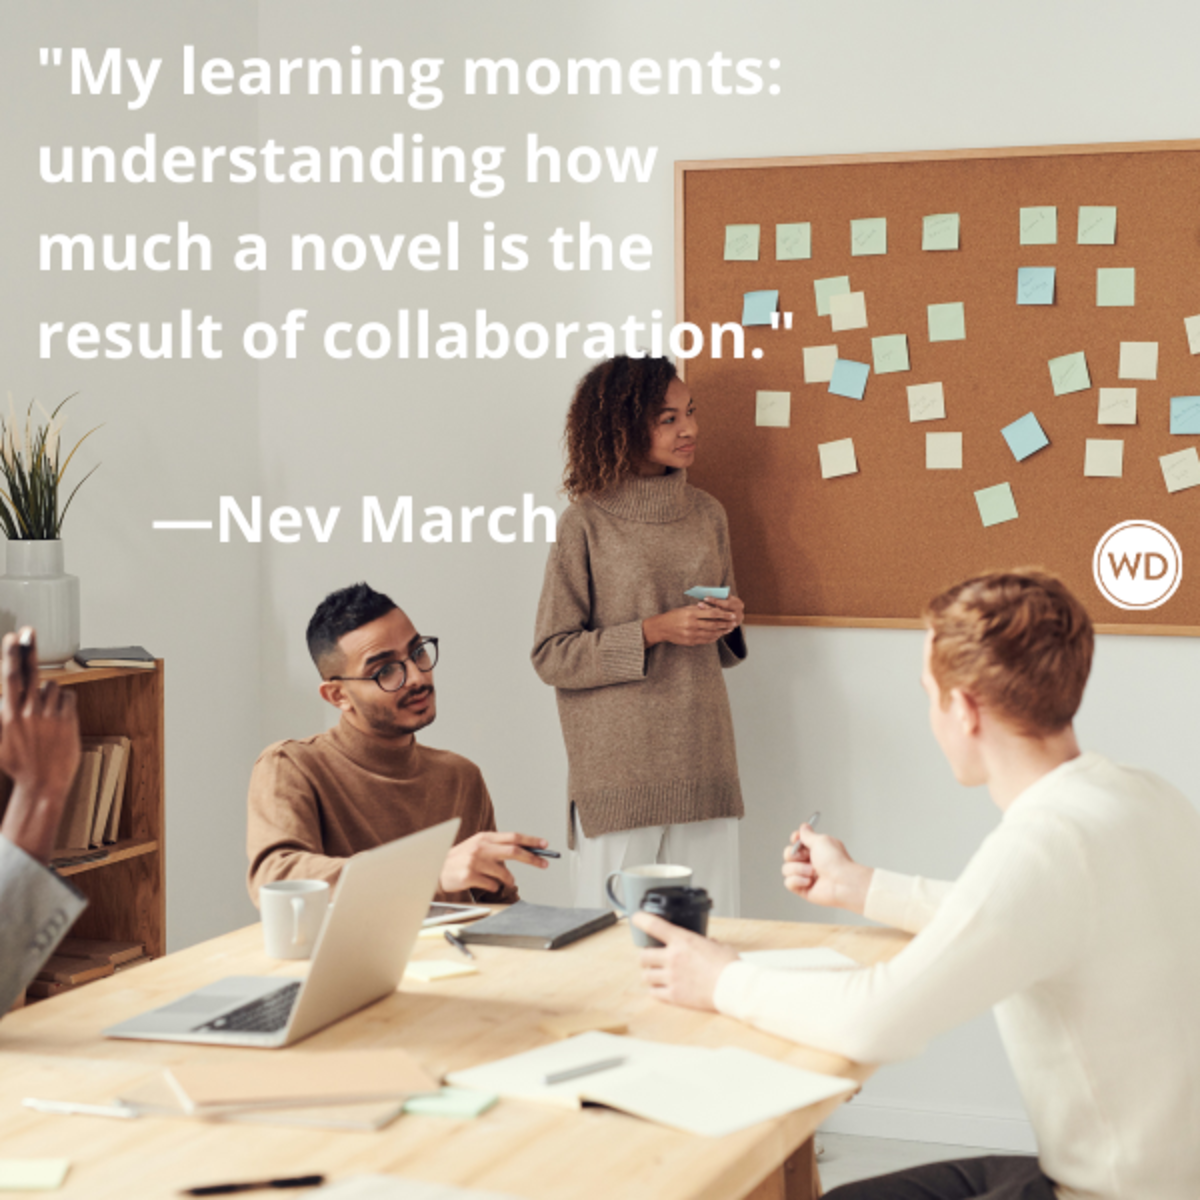 nev_march_quotes_my_learning_moments_understanding_how_much_a_novel_is_the_result_of_collaboration